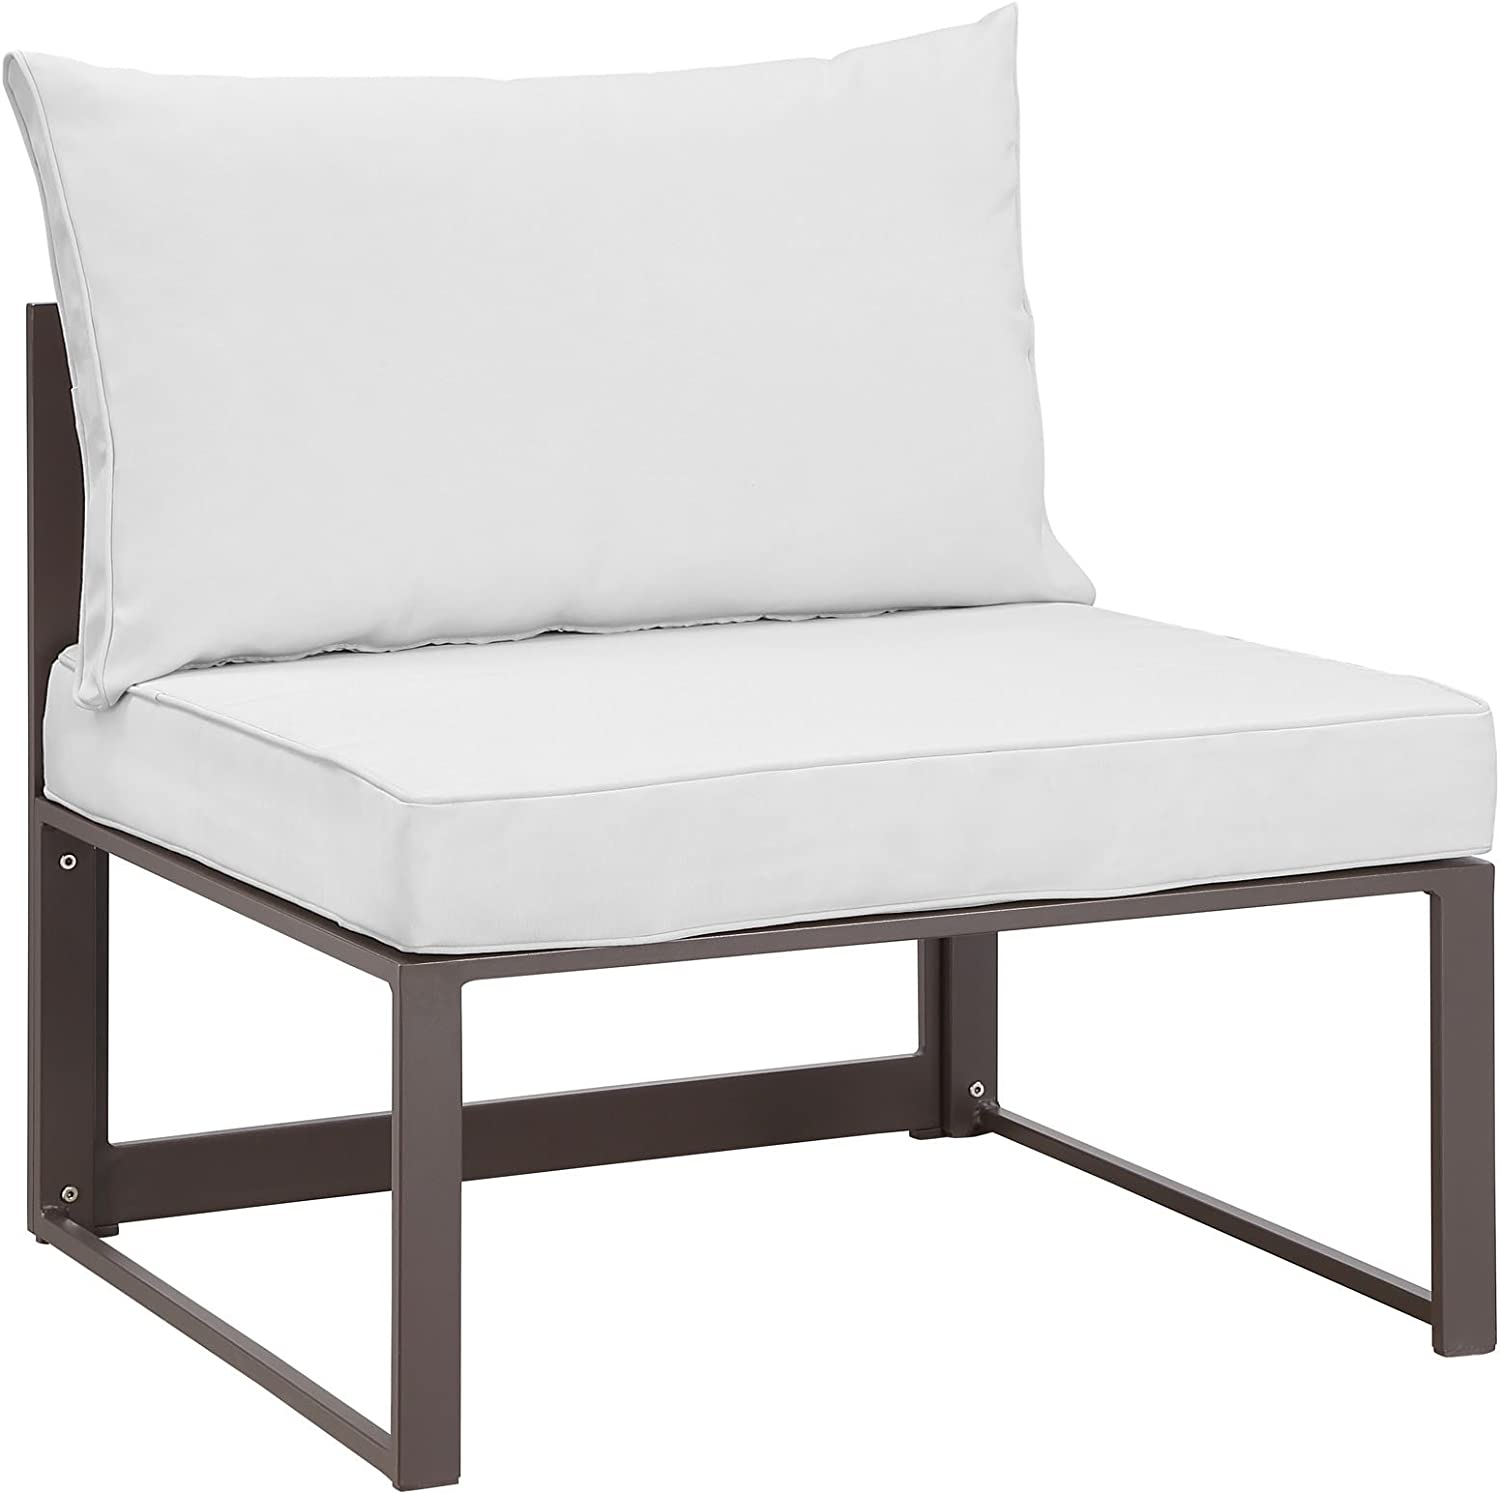 Modway Fortuna Aluminum Outdoor Patio Armless Chair 5 ☆ very Ranking TOP6 popular Whi in Brown